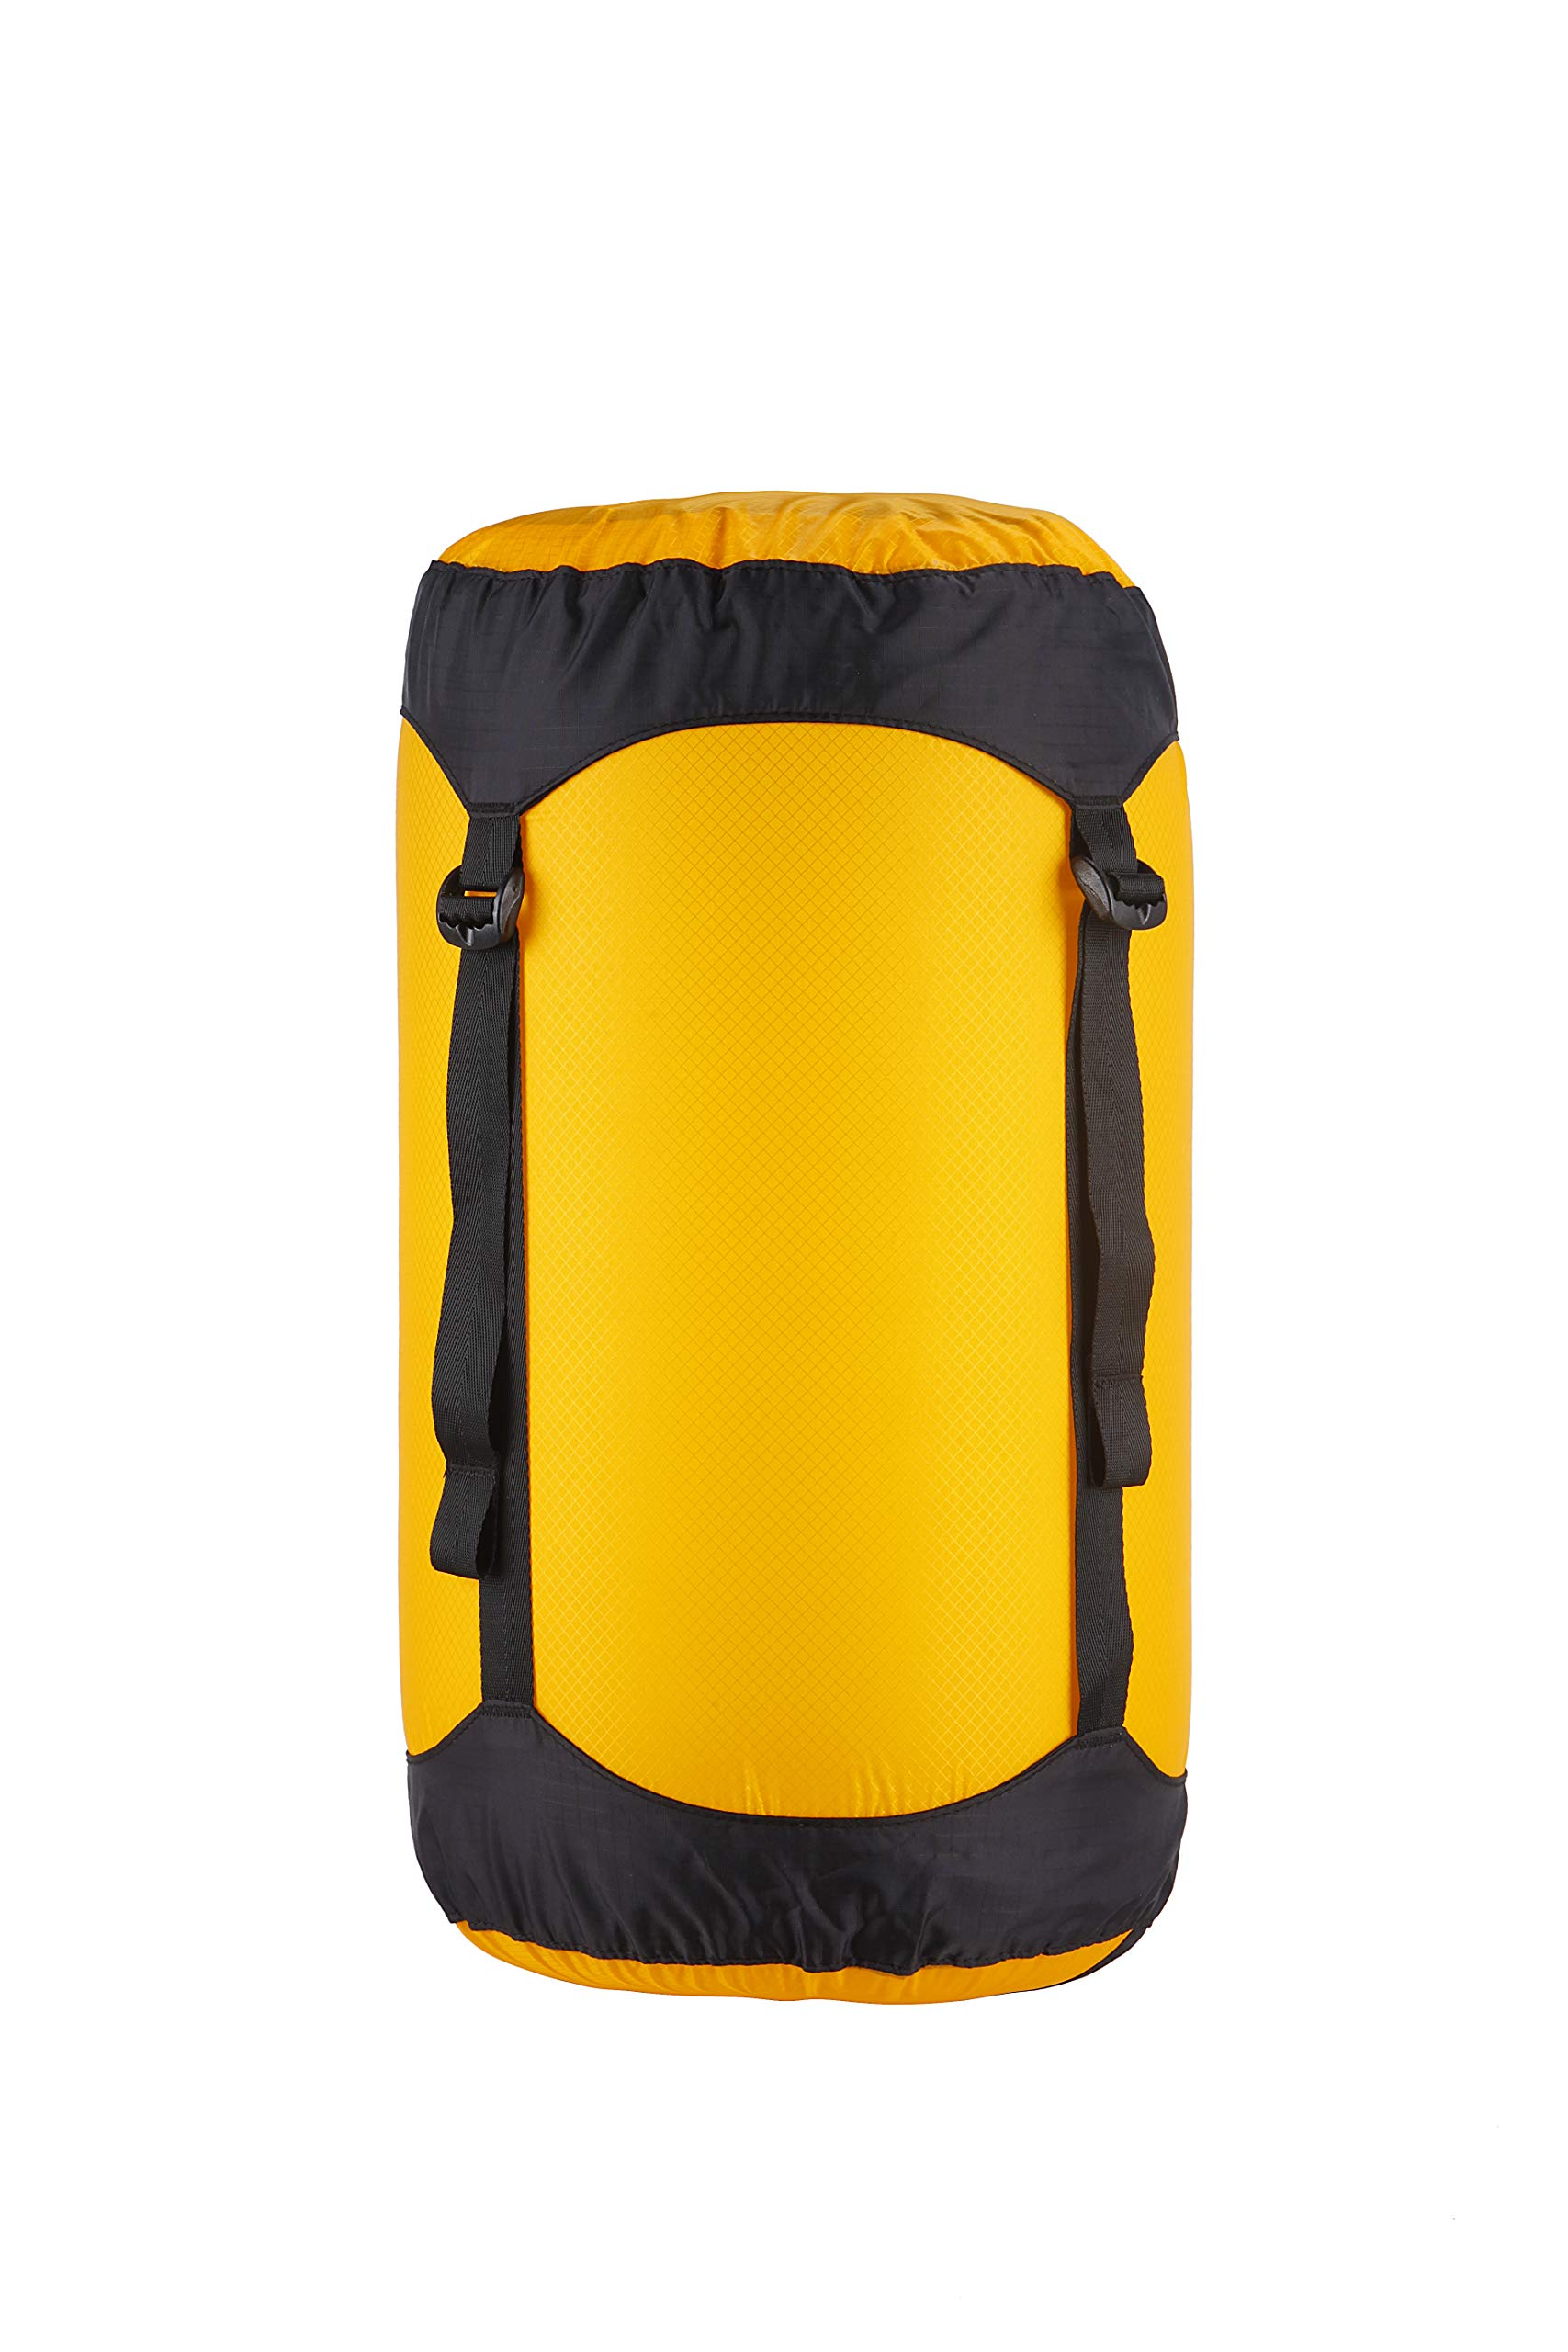 Sea to Summit Ultra-SIL Compression Sack, Yellow, 14 Liter by Sea to Summit